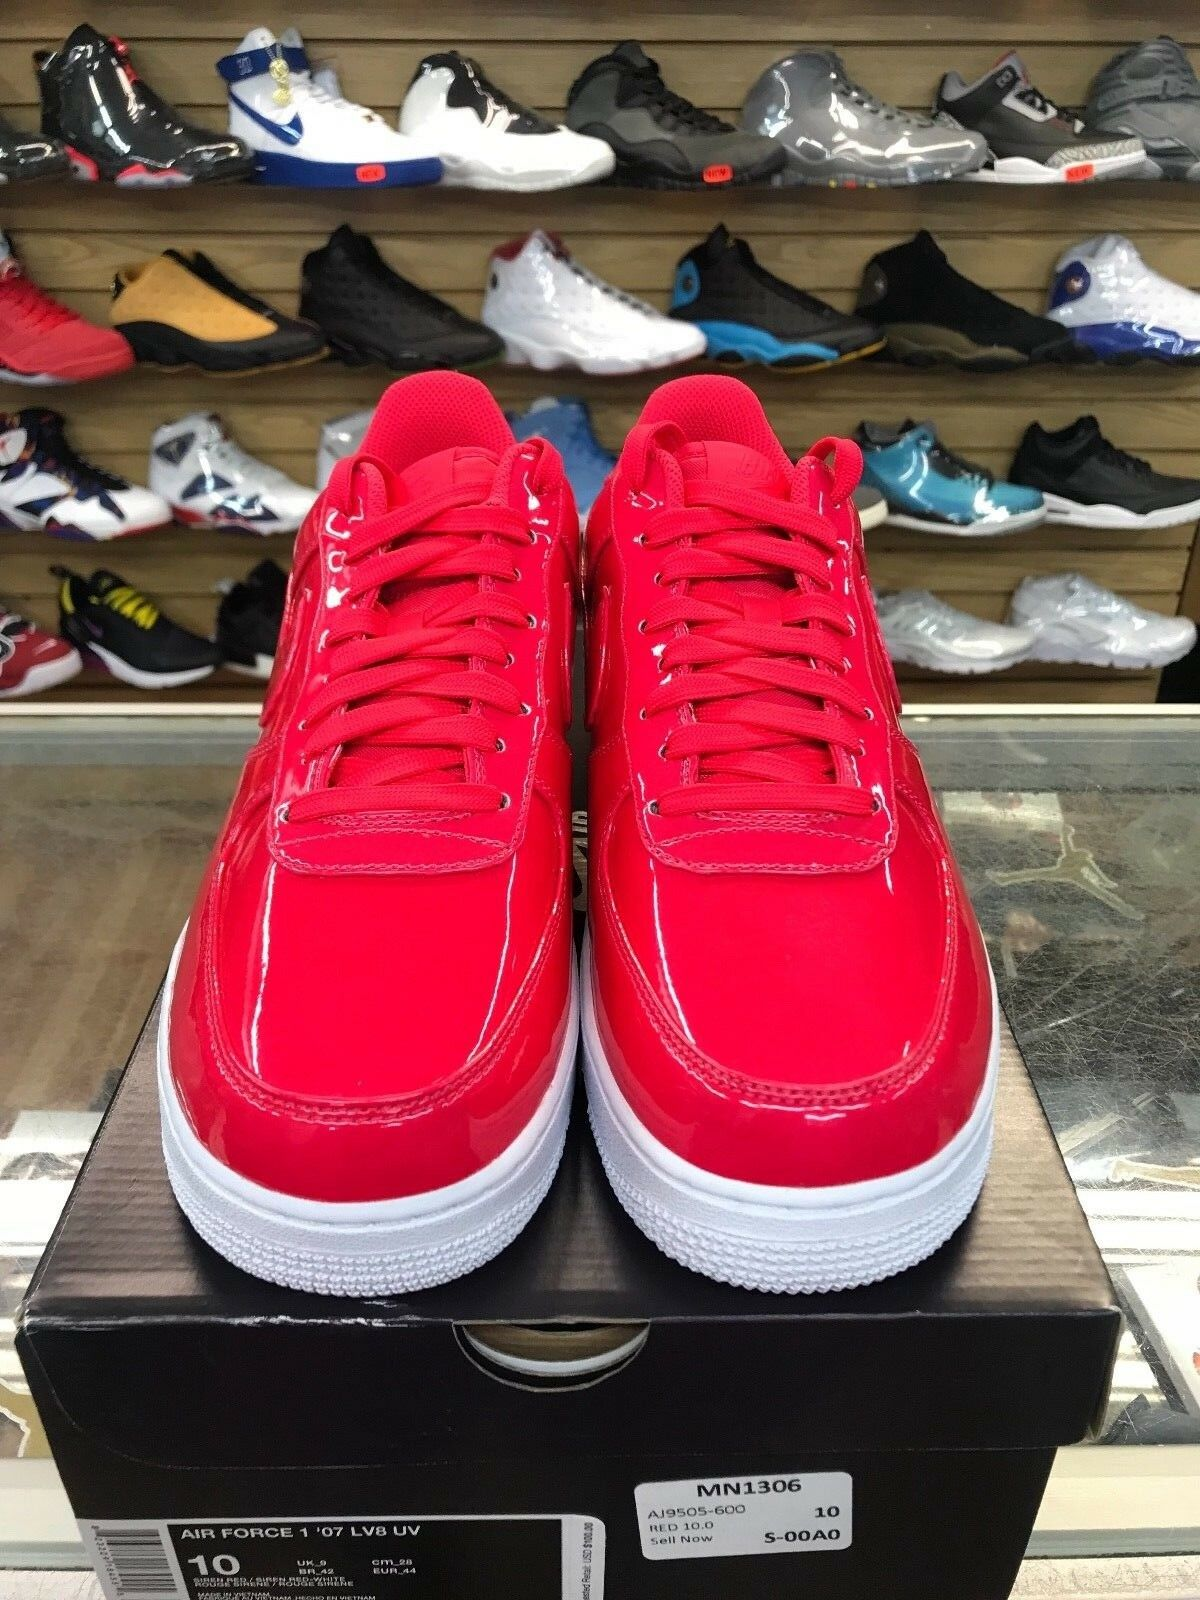 Nike Air Force 1 07 Lv8  Patent Leather Siren Red AJ9505-600  Price reduction